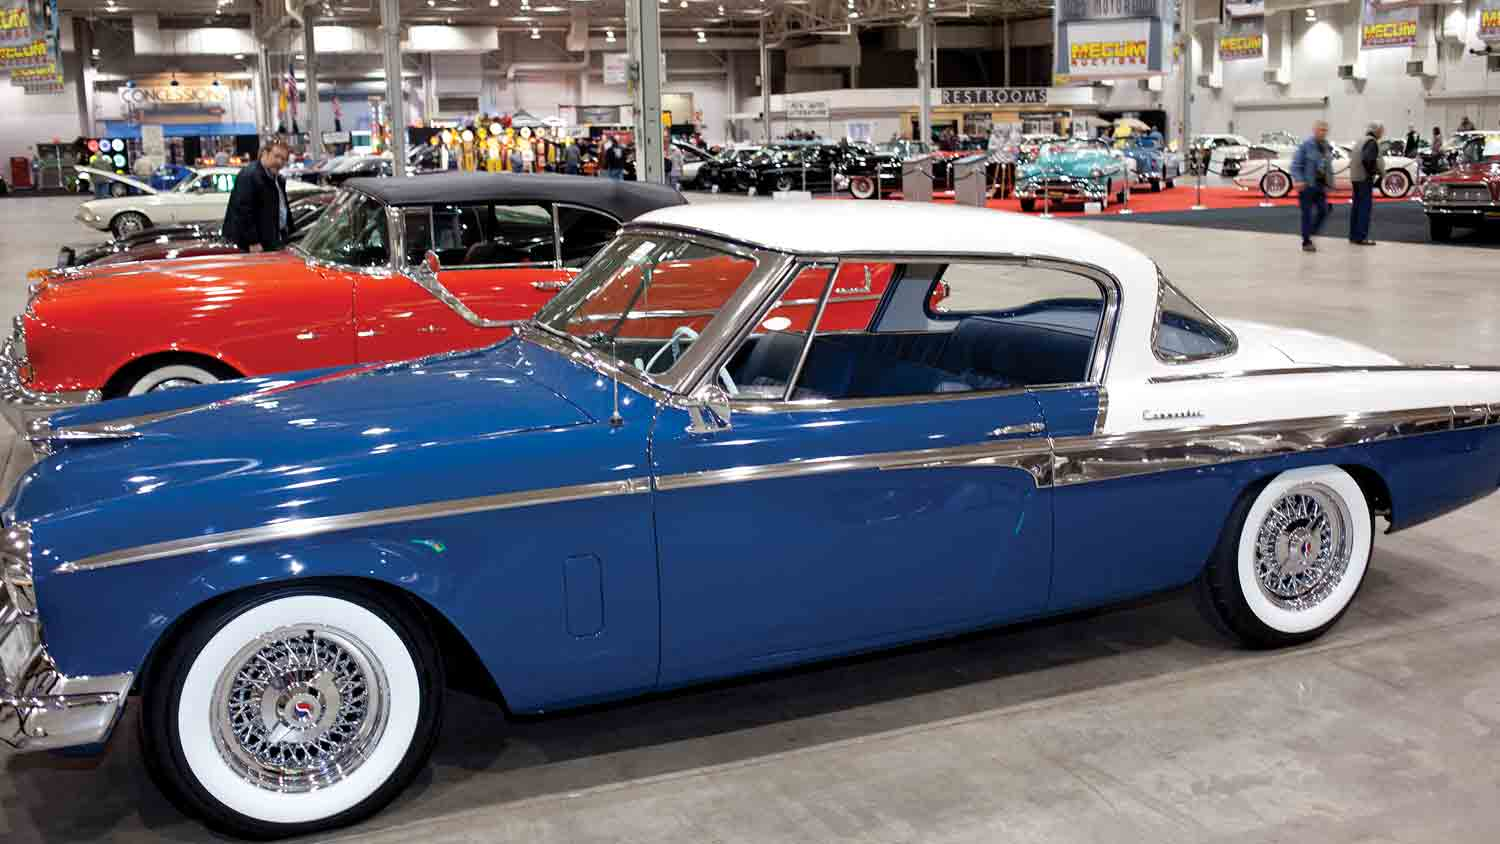 Mecum Spring Classic Car Auction